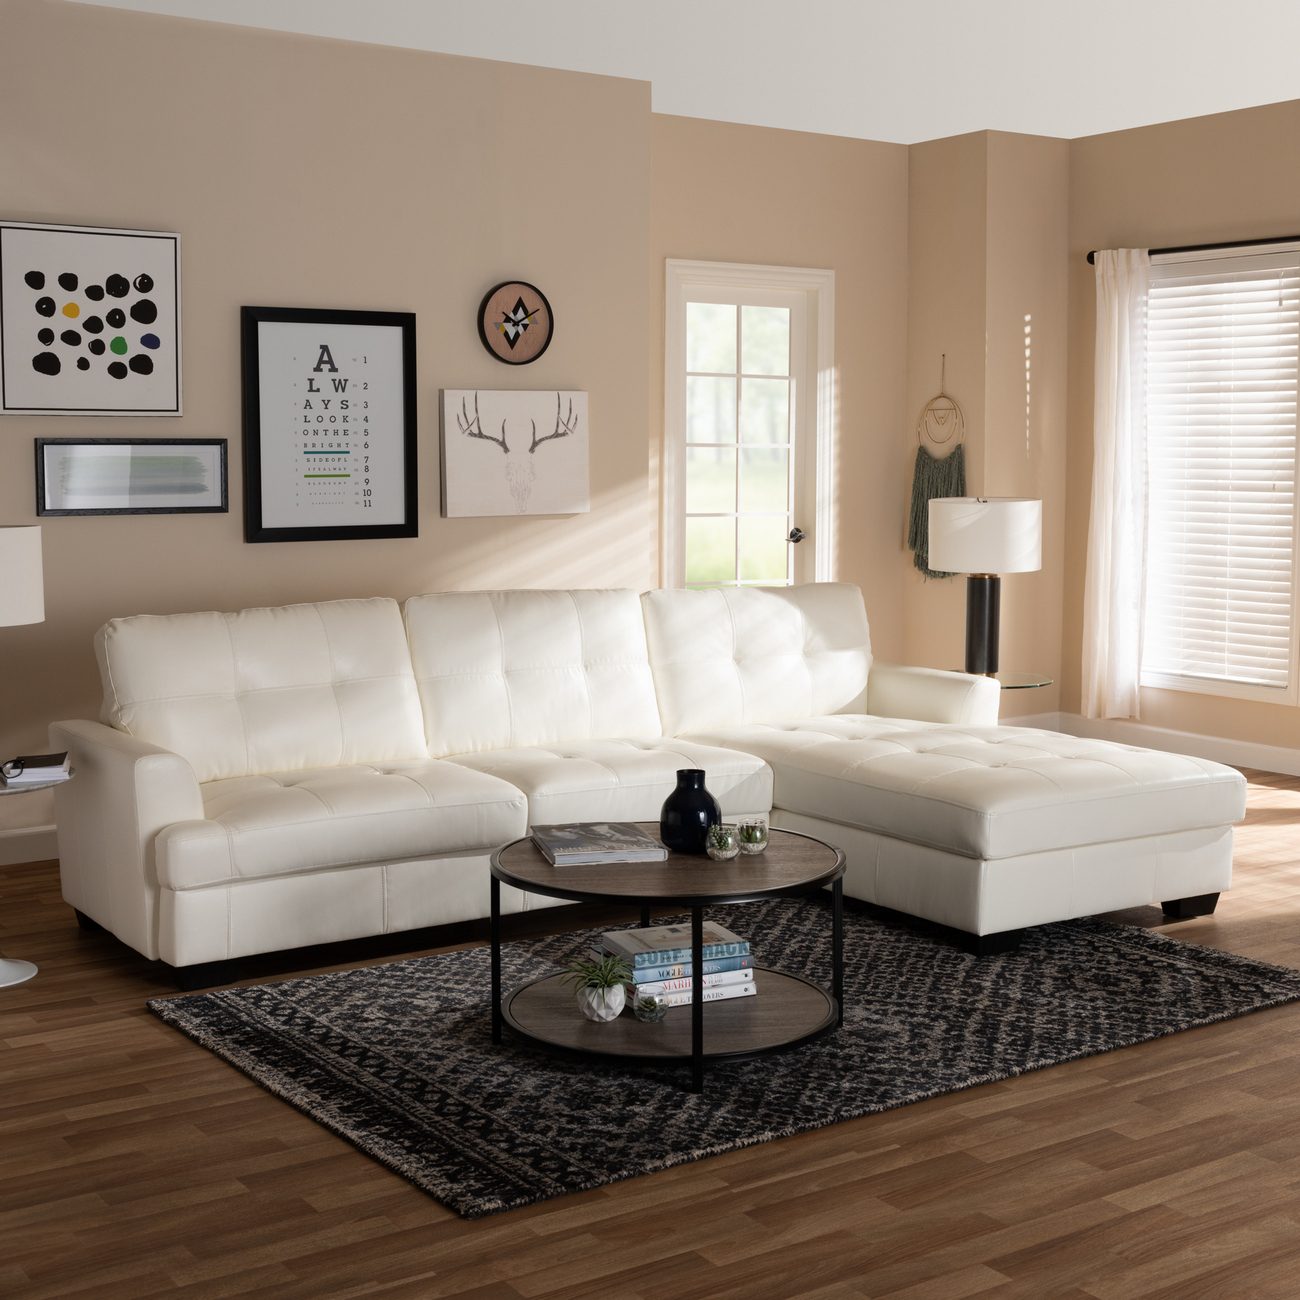 Wholesale Interiors White Leather Upholstered Sectional Sofa